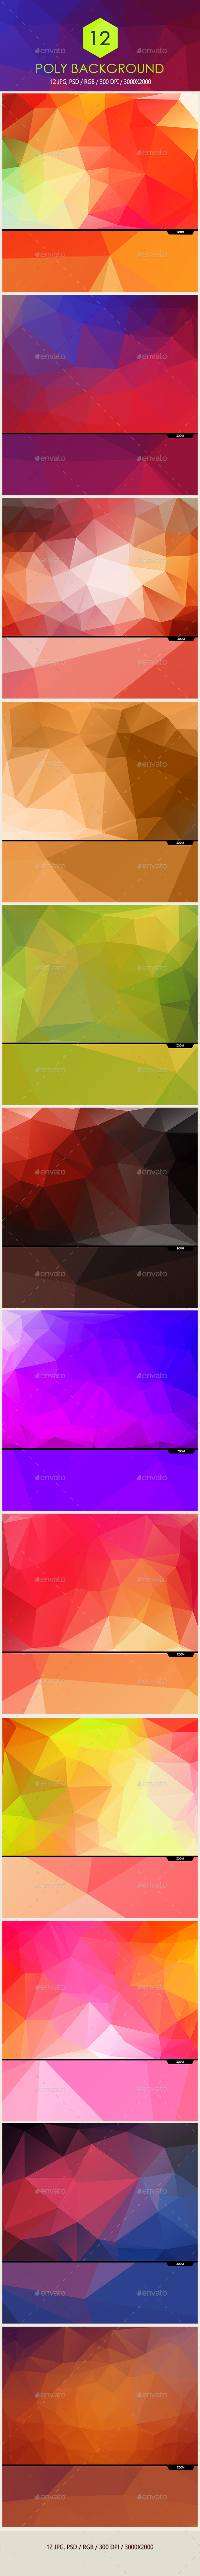 """Polygon Backgrounds"" - Abstract Backgrounds"